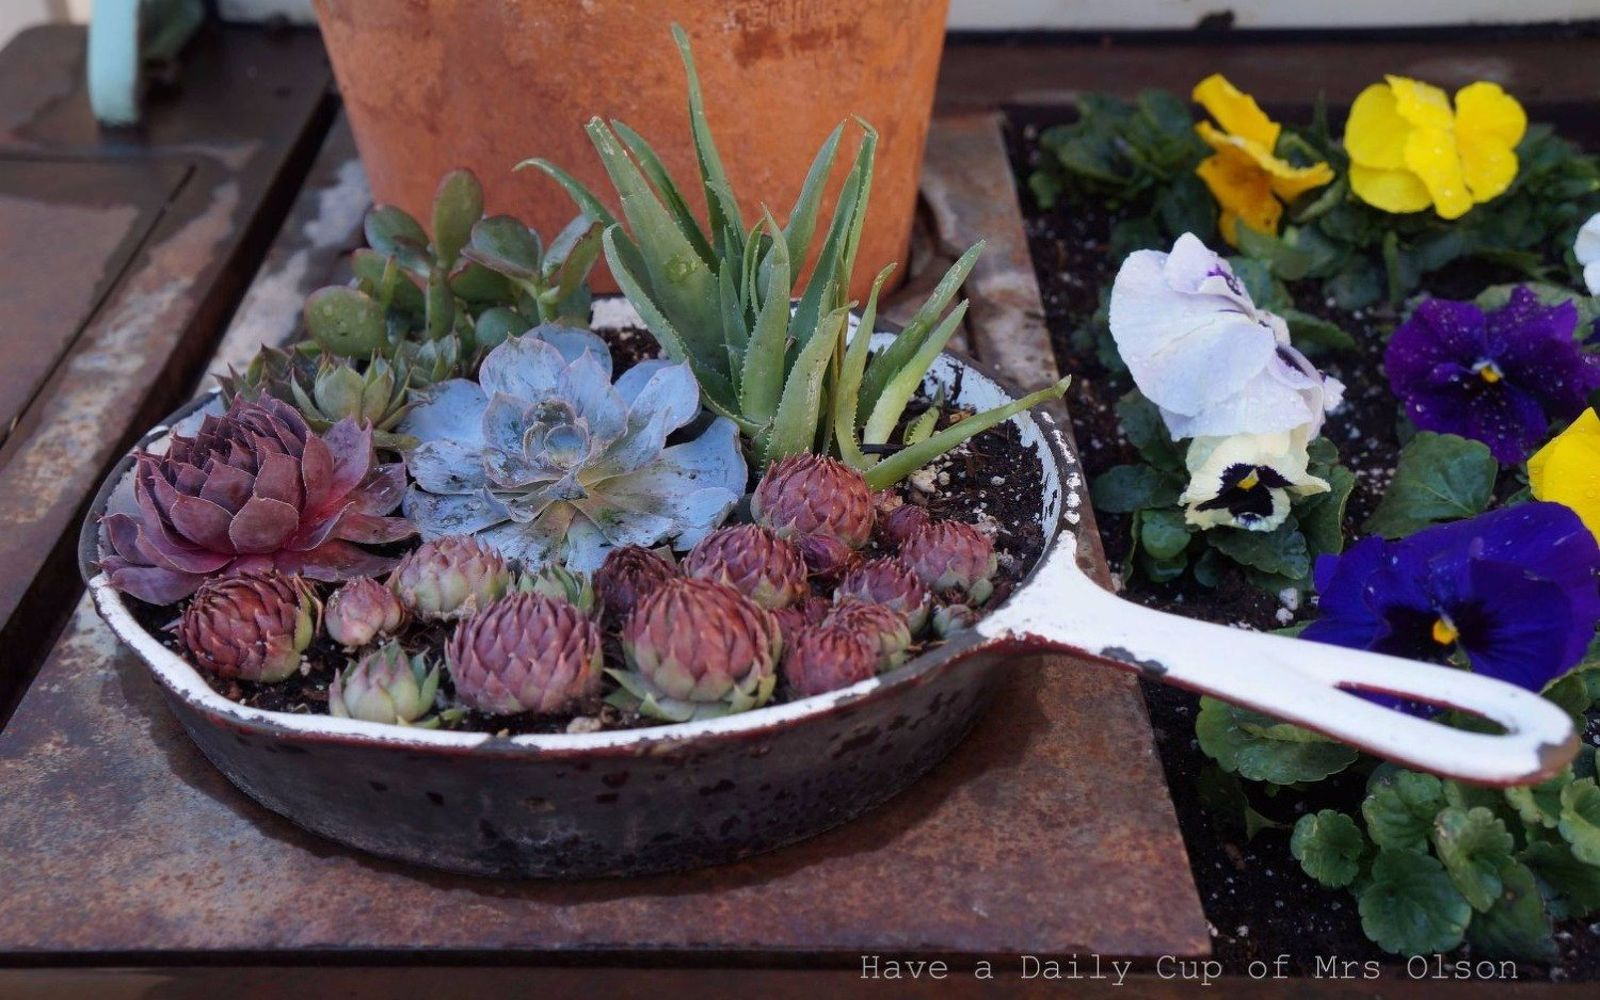 s 17 insanely fun ways to display your favorite succulents, flowers, gardening, succulents, Plant an entire garden in an old pan